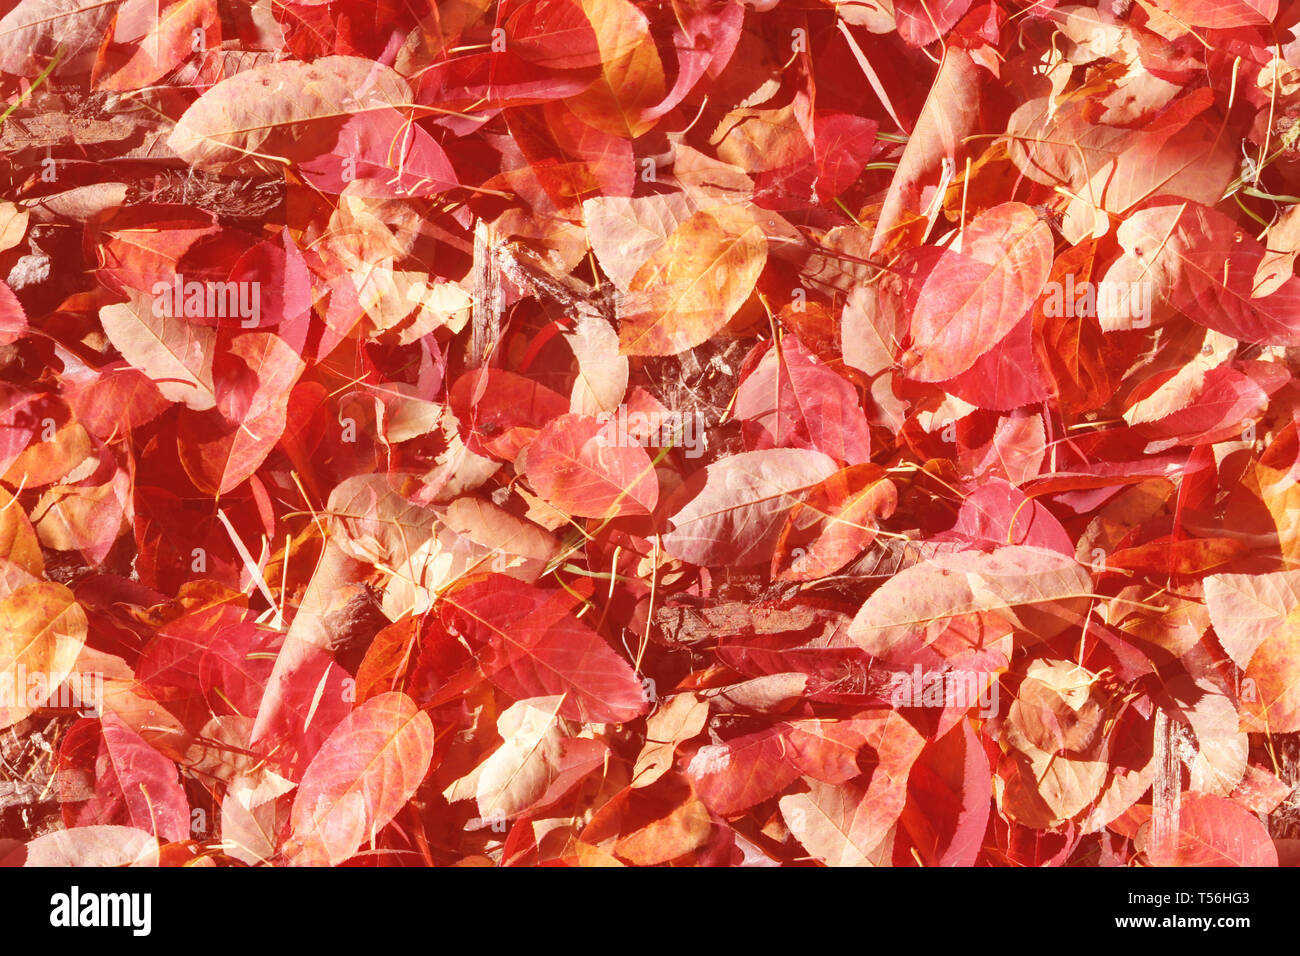 Stylised overlay design background of seamless autumn leaves that will tile endlessly - Stock Image